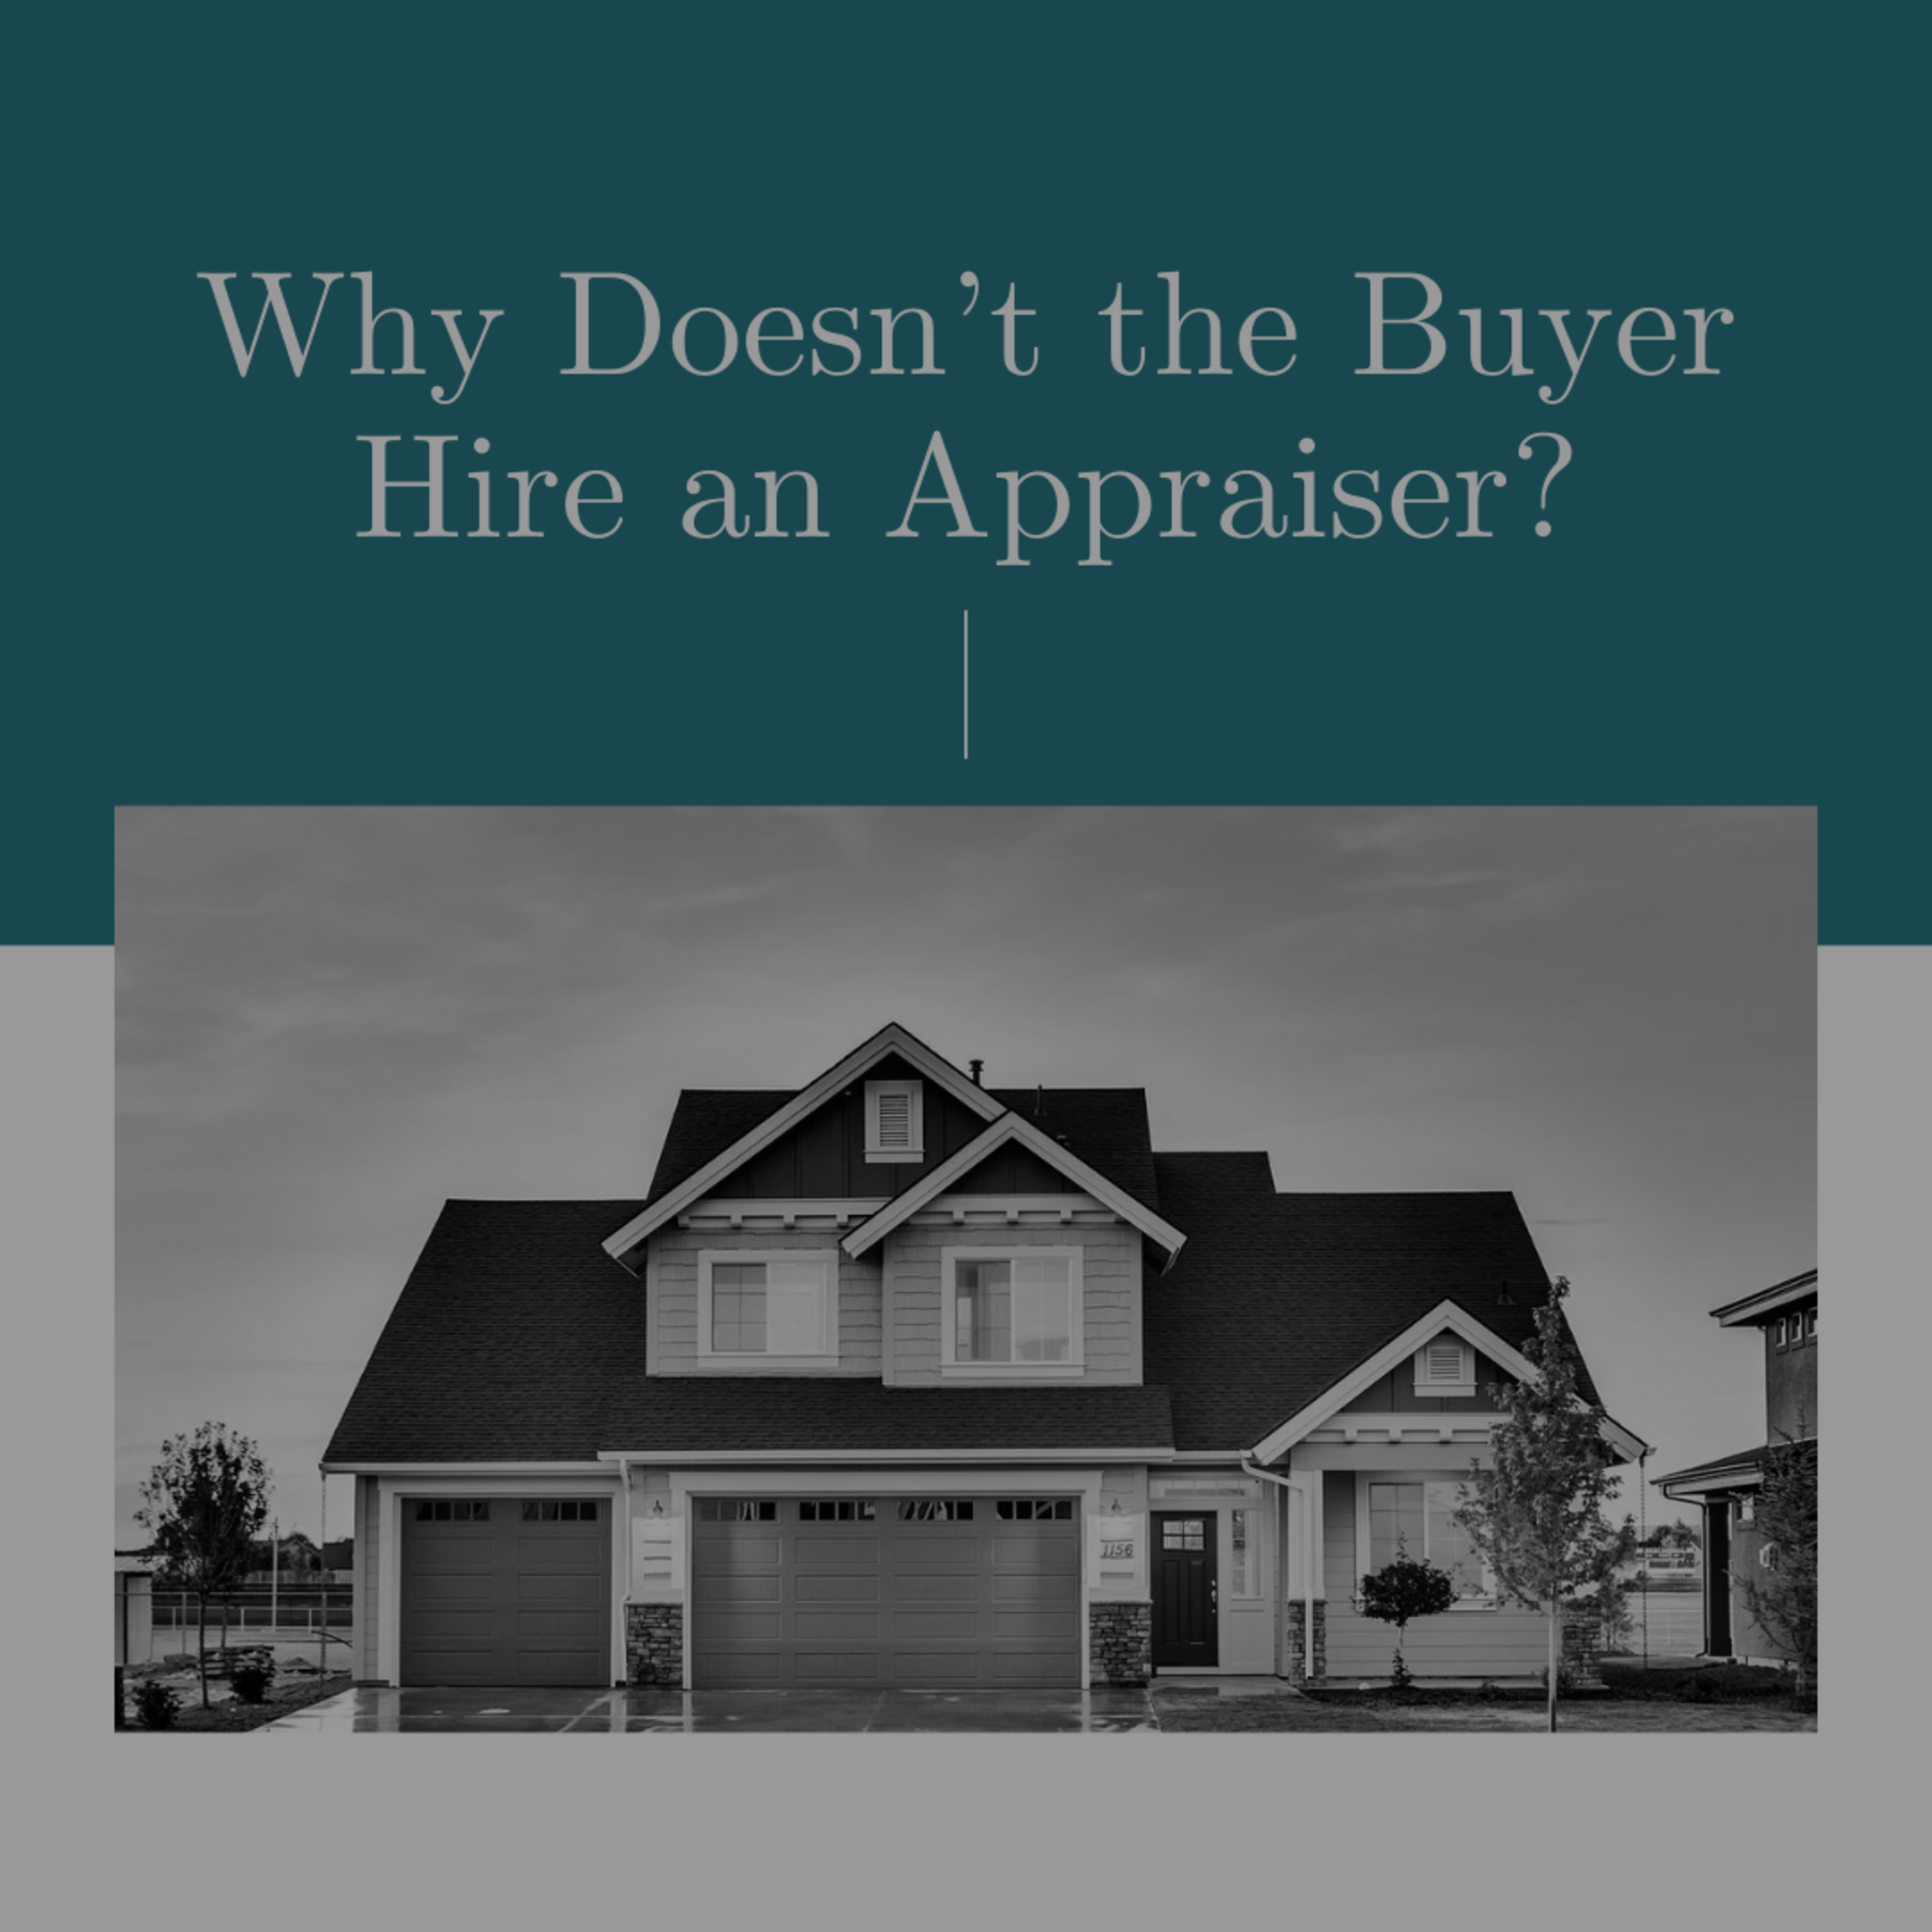 Why Doesn't the Buyer Hire an Appraiser?